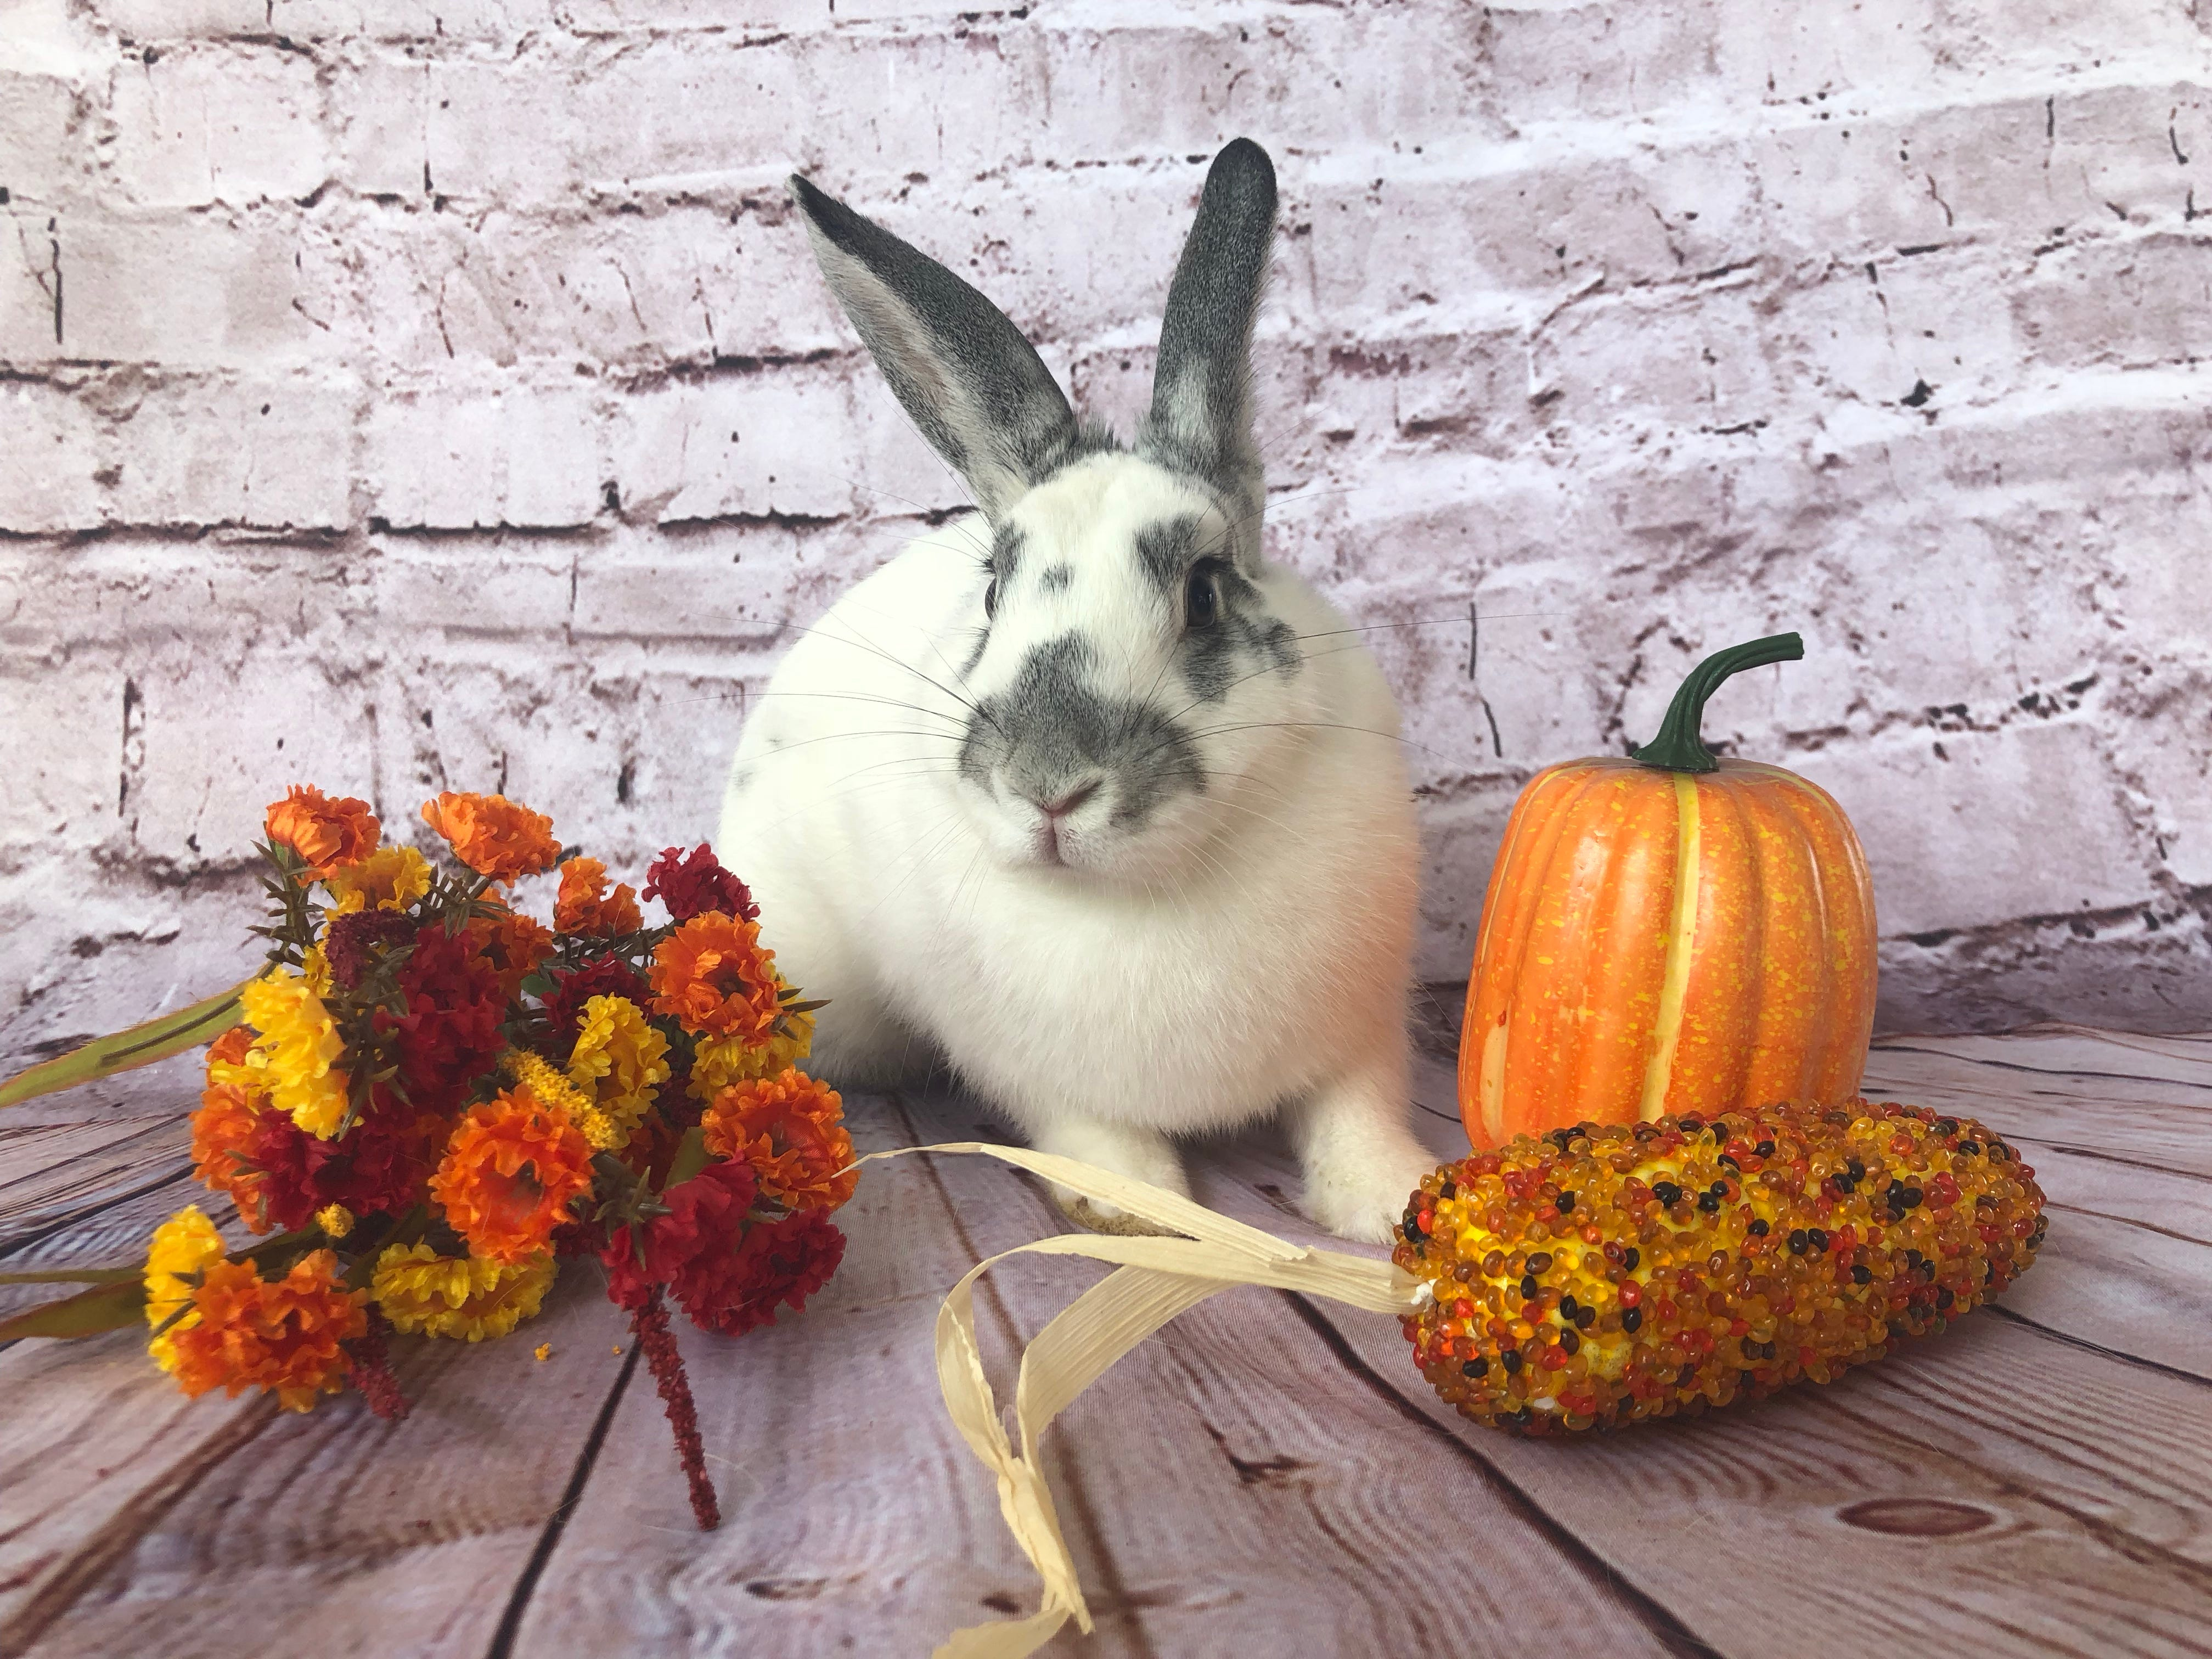 """Adoptable Cosette and her fellow shelter rabbits are feeling extra grateful this Thanksgiving. They have been joined by several """"safe haven"""" bunnieswhoare being cared for by the Ventura County Animal Services Bunny Brigadewhile their families remain displaced by area fires. While firefighters havecome from around the country to help make the local community safe again, Ventura County Animal Services hasworked around the clock to provide shelter and loving care to dozens of petsof all shapes and sizes until their families can reclaim them. Meanwhile,Cosette is one of more than 70 rabbits who are still awaiting their foreverhomes. She herself is a Ventura County Animal Services success story, having received life-changingsurgery that partially amputated a severely injured leg while enabling herto continue to hop, play and live a happy and healthy life. To meet thisfriendly and curious girl, visit the county shelter at 600 Aviation Drive inCamarillo and ask for ID A691407. For details about adoption hours, offsiteevents, bunny nail trims and compatibility dates, visitfacebook.com/VCASBunnyBrigade. For more information on other animals, visit www.vcas.us."""